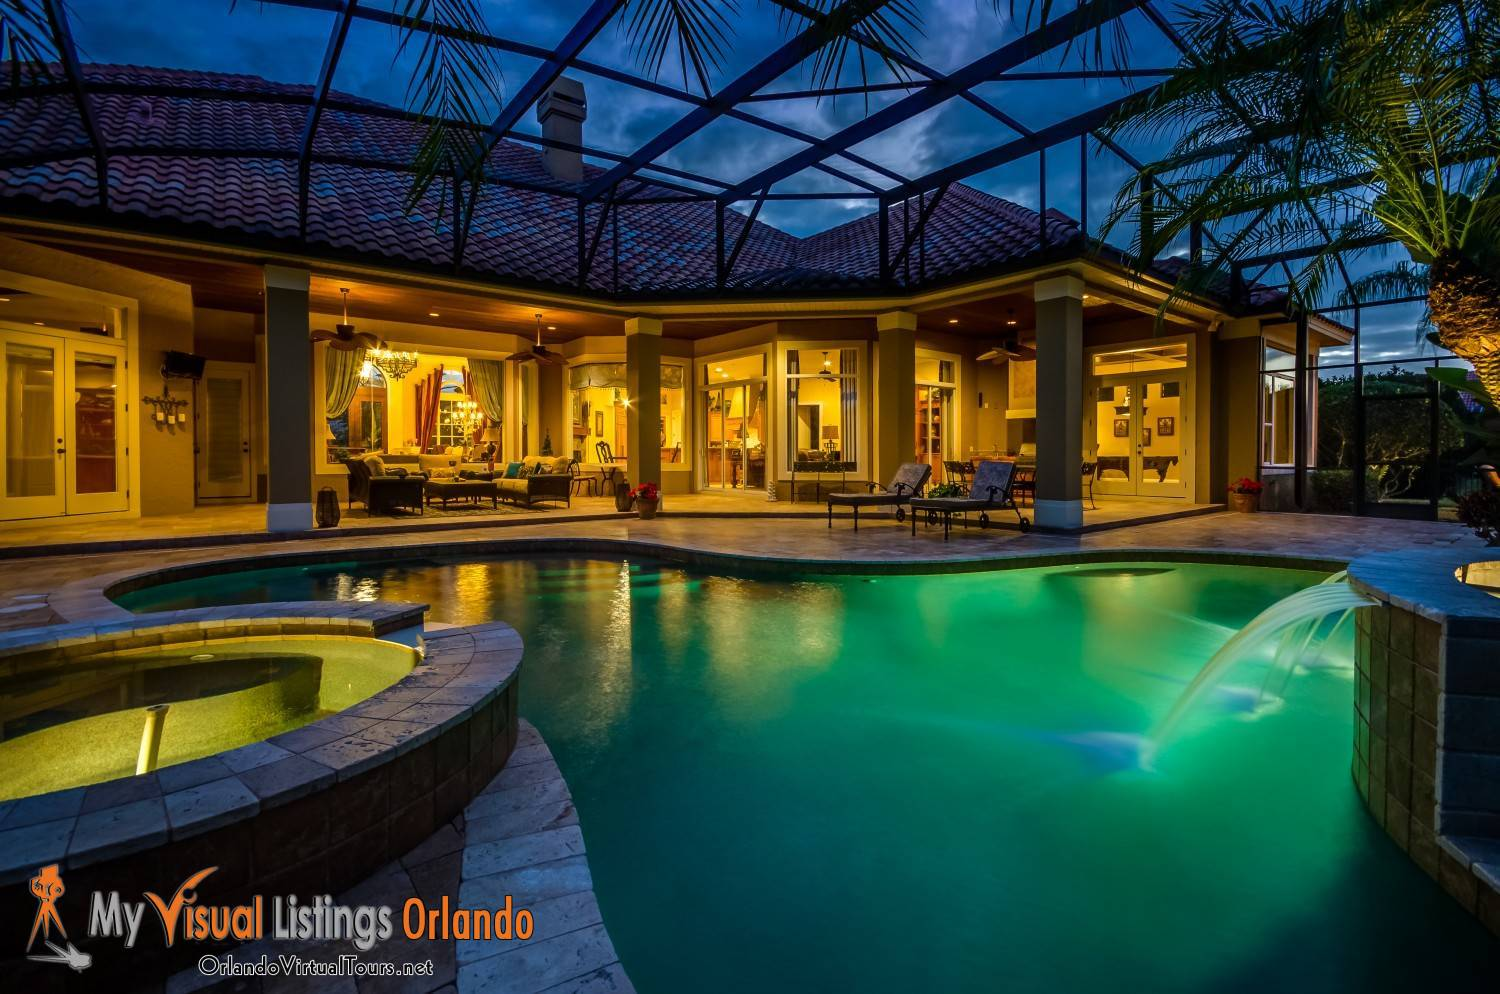 Twilight Photos of Back pool - Professional Photography by MVL